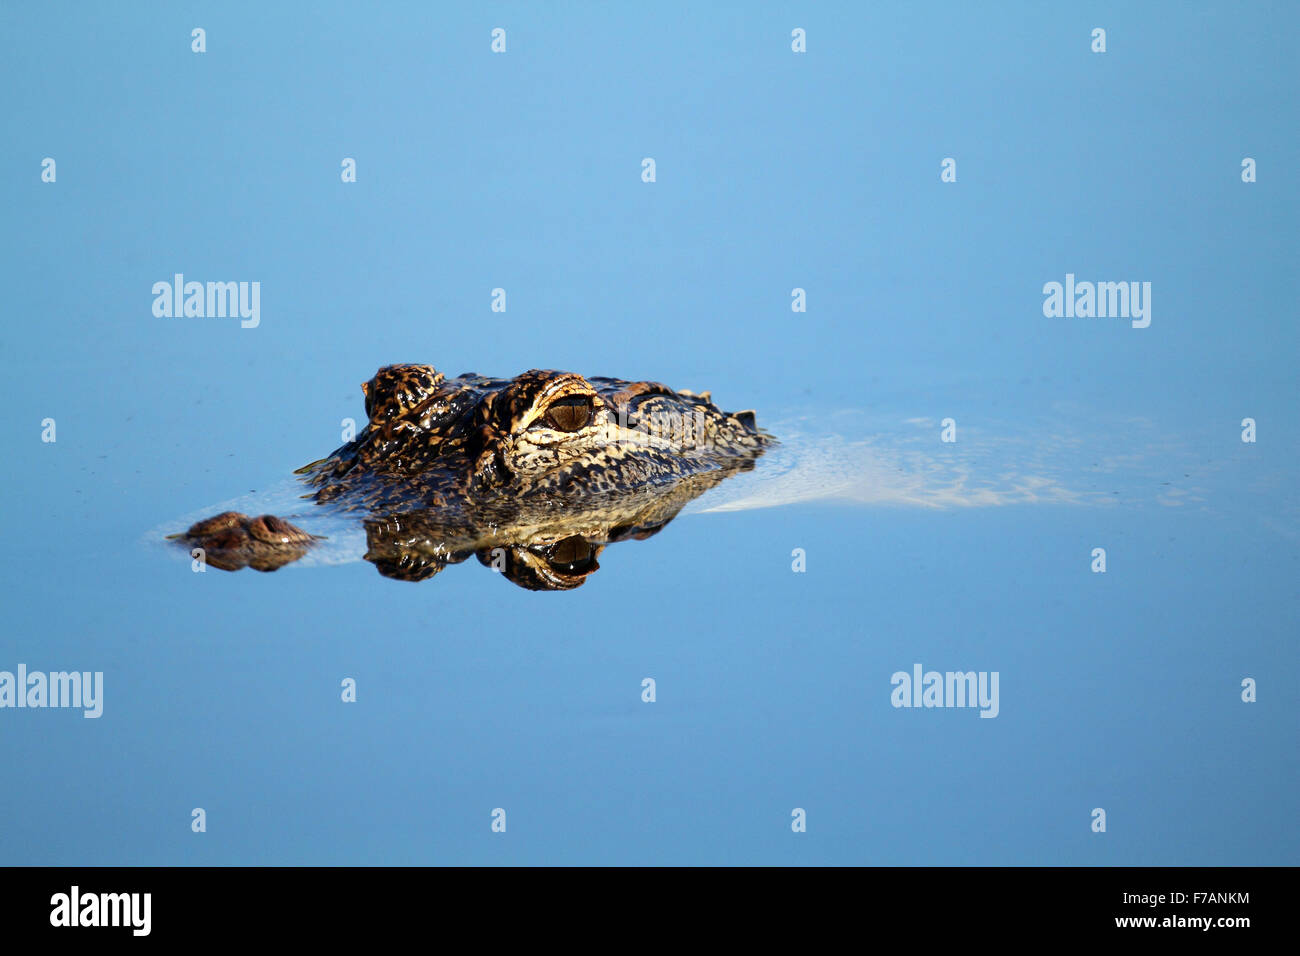 Young Alligator relaxing in perfectly calm waters Stock Photo